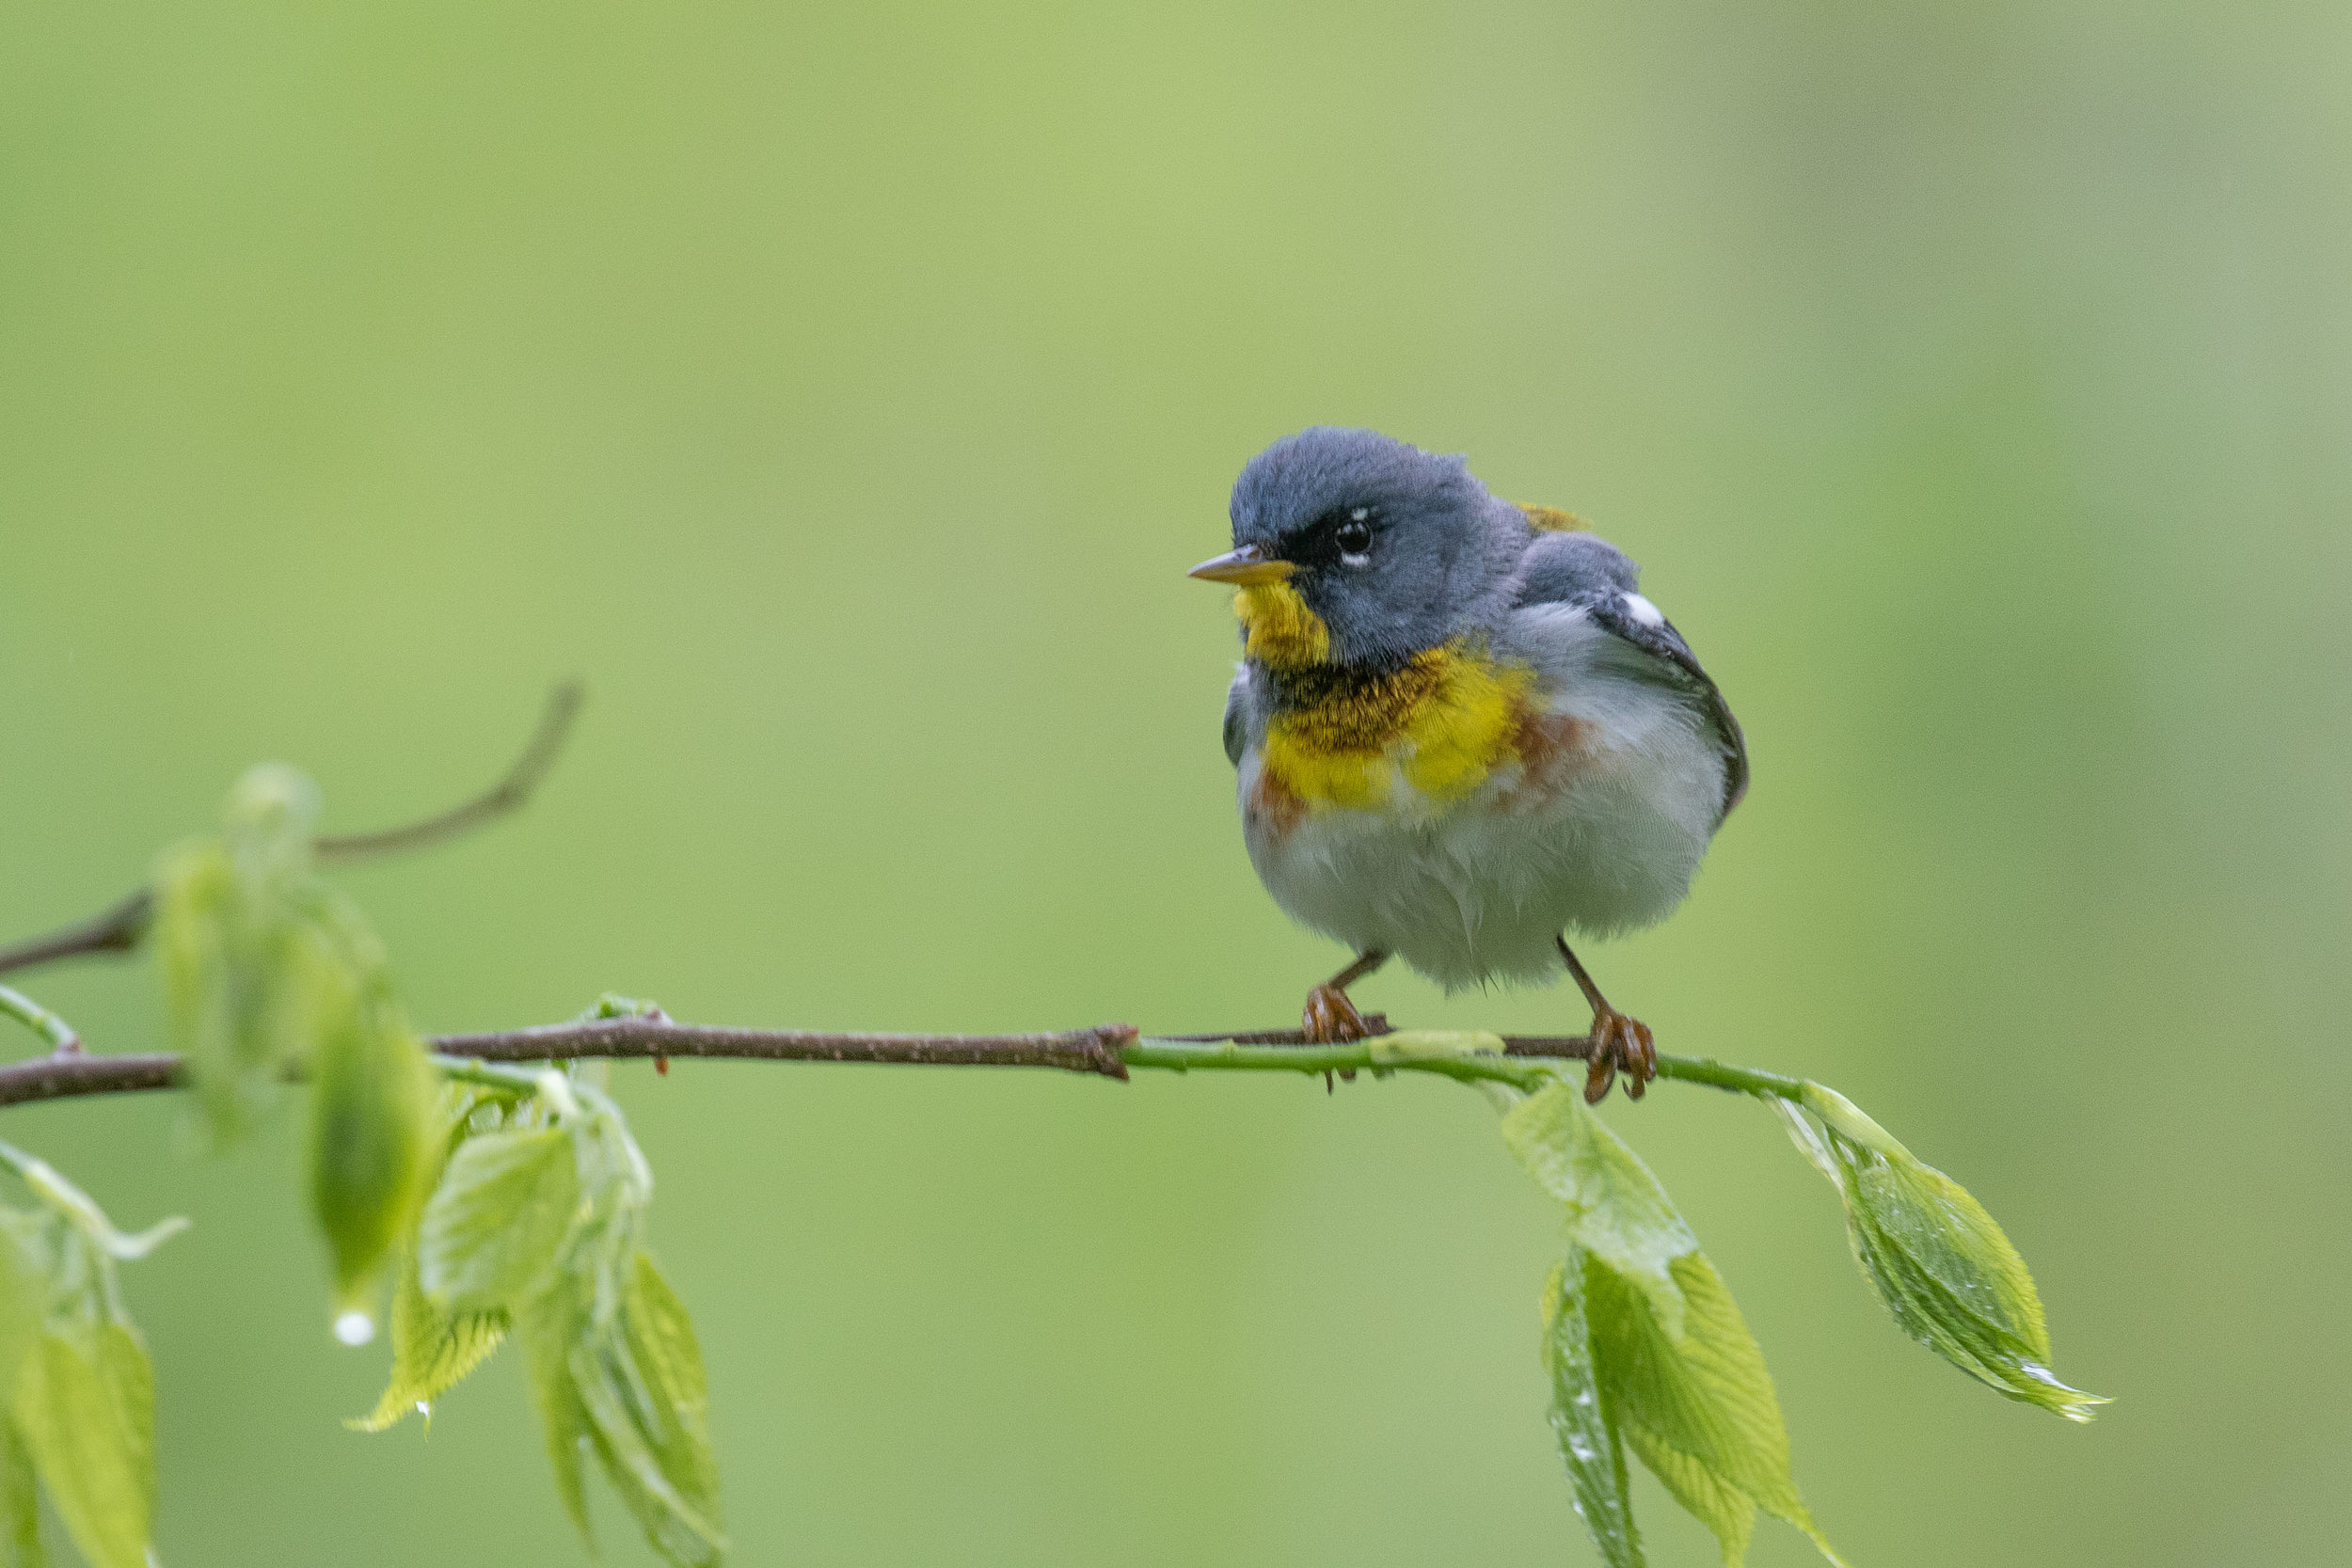 Northern Parula from a guided trip last week, at LaBagh Woods Forest Preserve in Chicago.